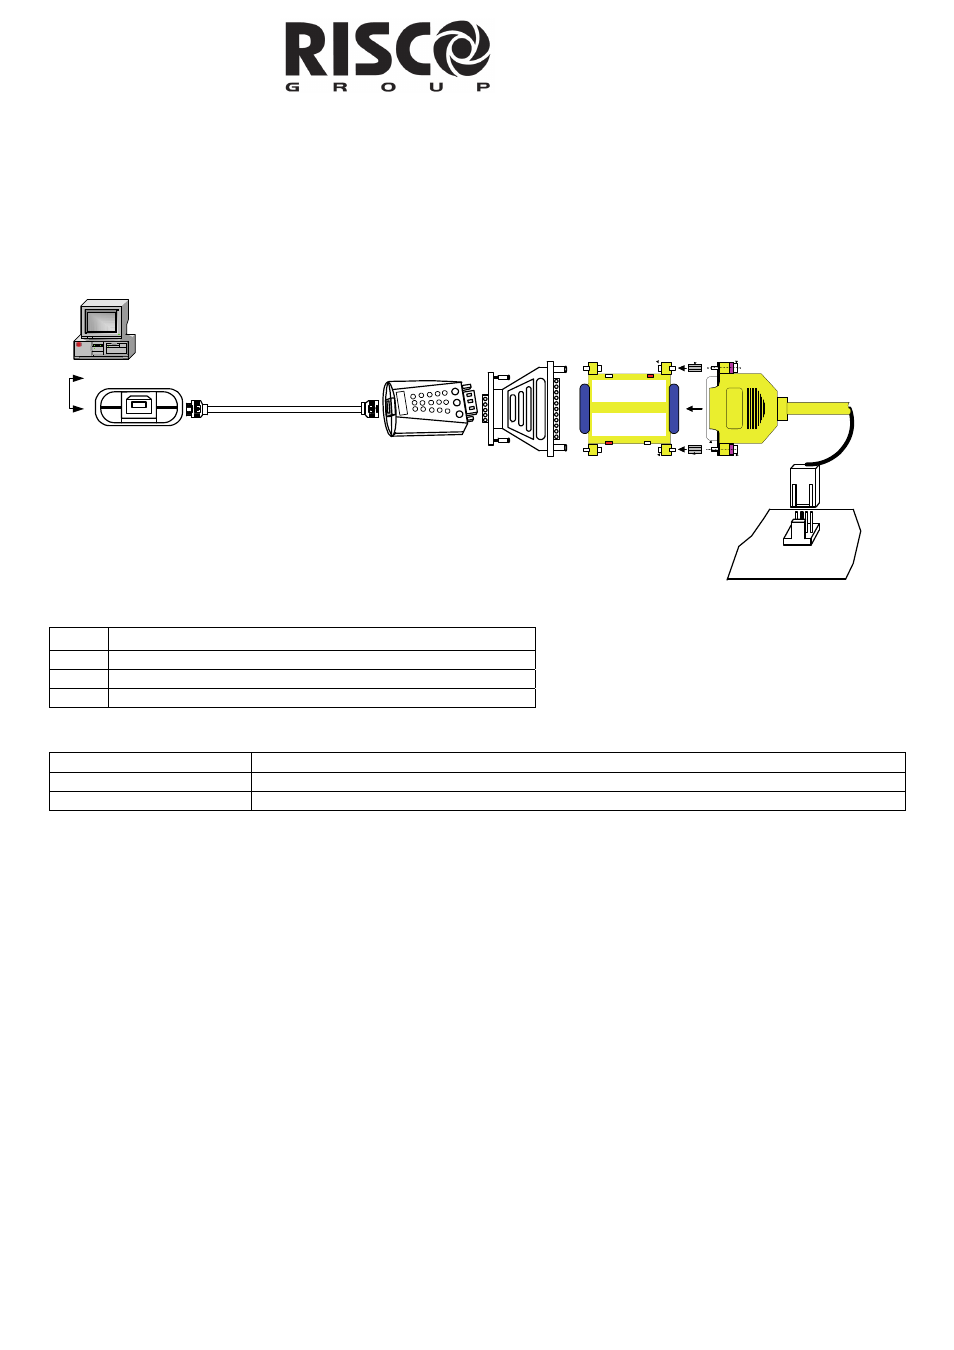 Usb Wiring Leds Indication Led Turns On When Ordering P N Risco In Parallel Background Image